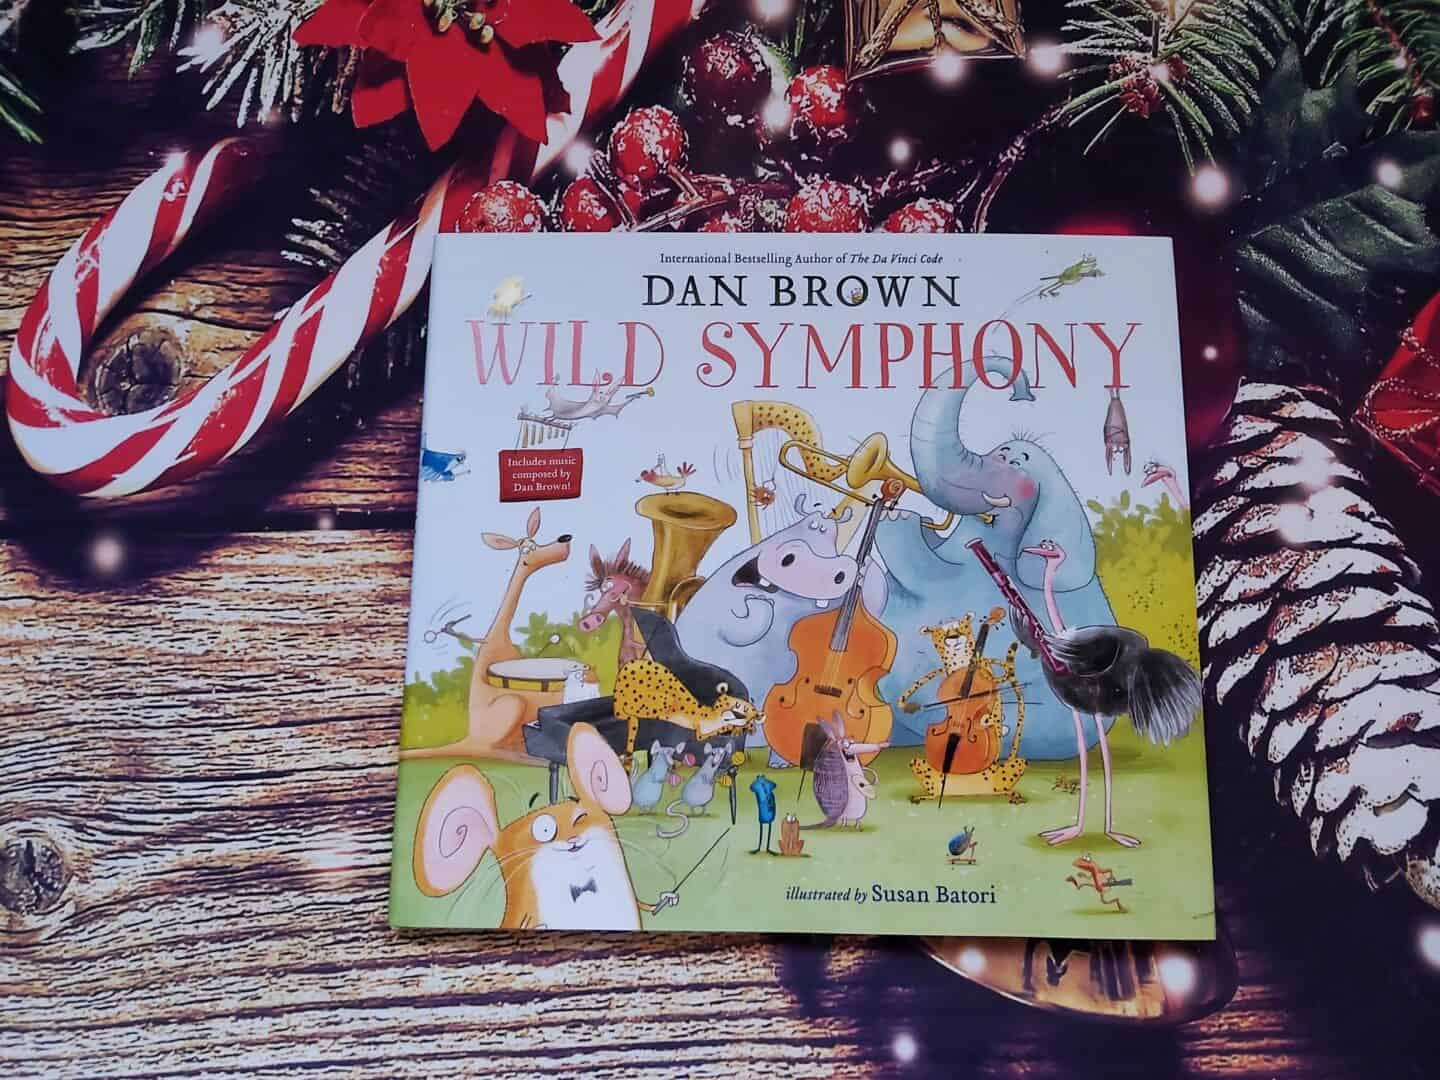 Wild Symphony children's illustrated book against Christmas background